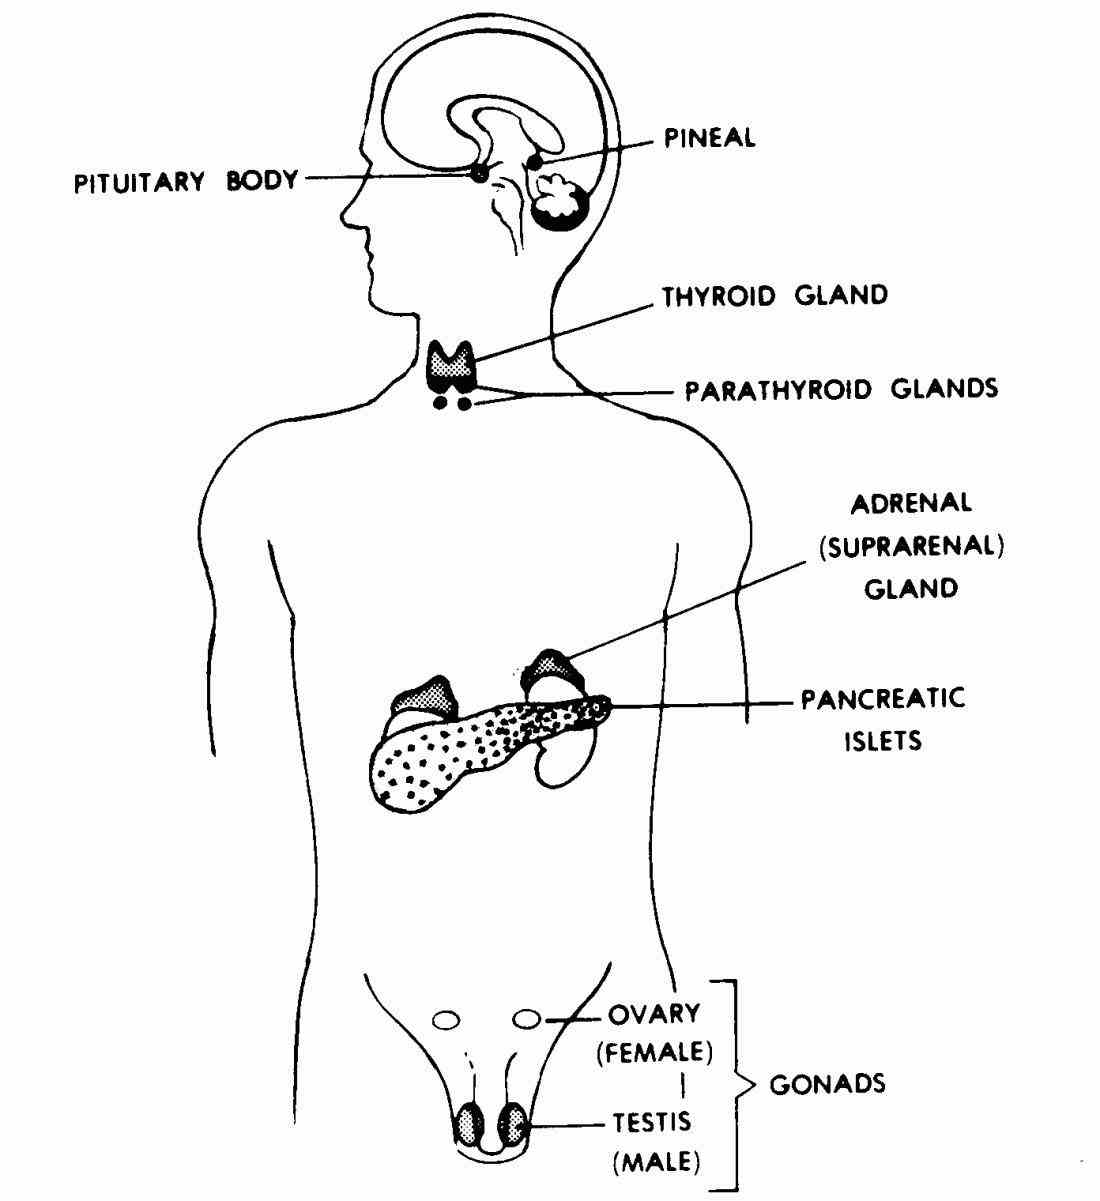 thyroid parathyroids adrenals pineal body and reproductive  there Glands In The Body And Their Functions are different types of